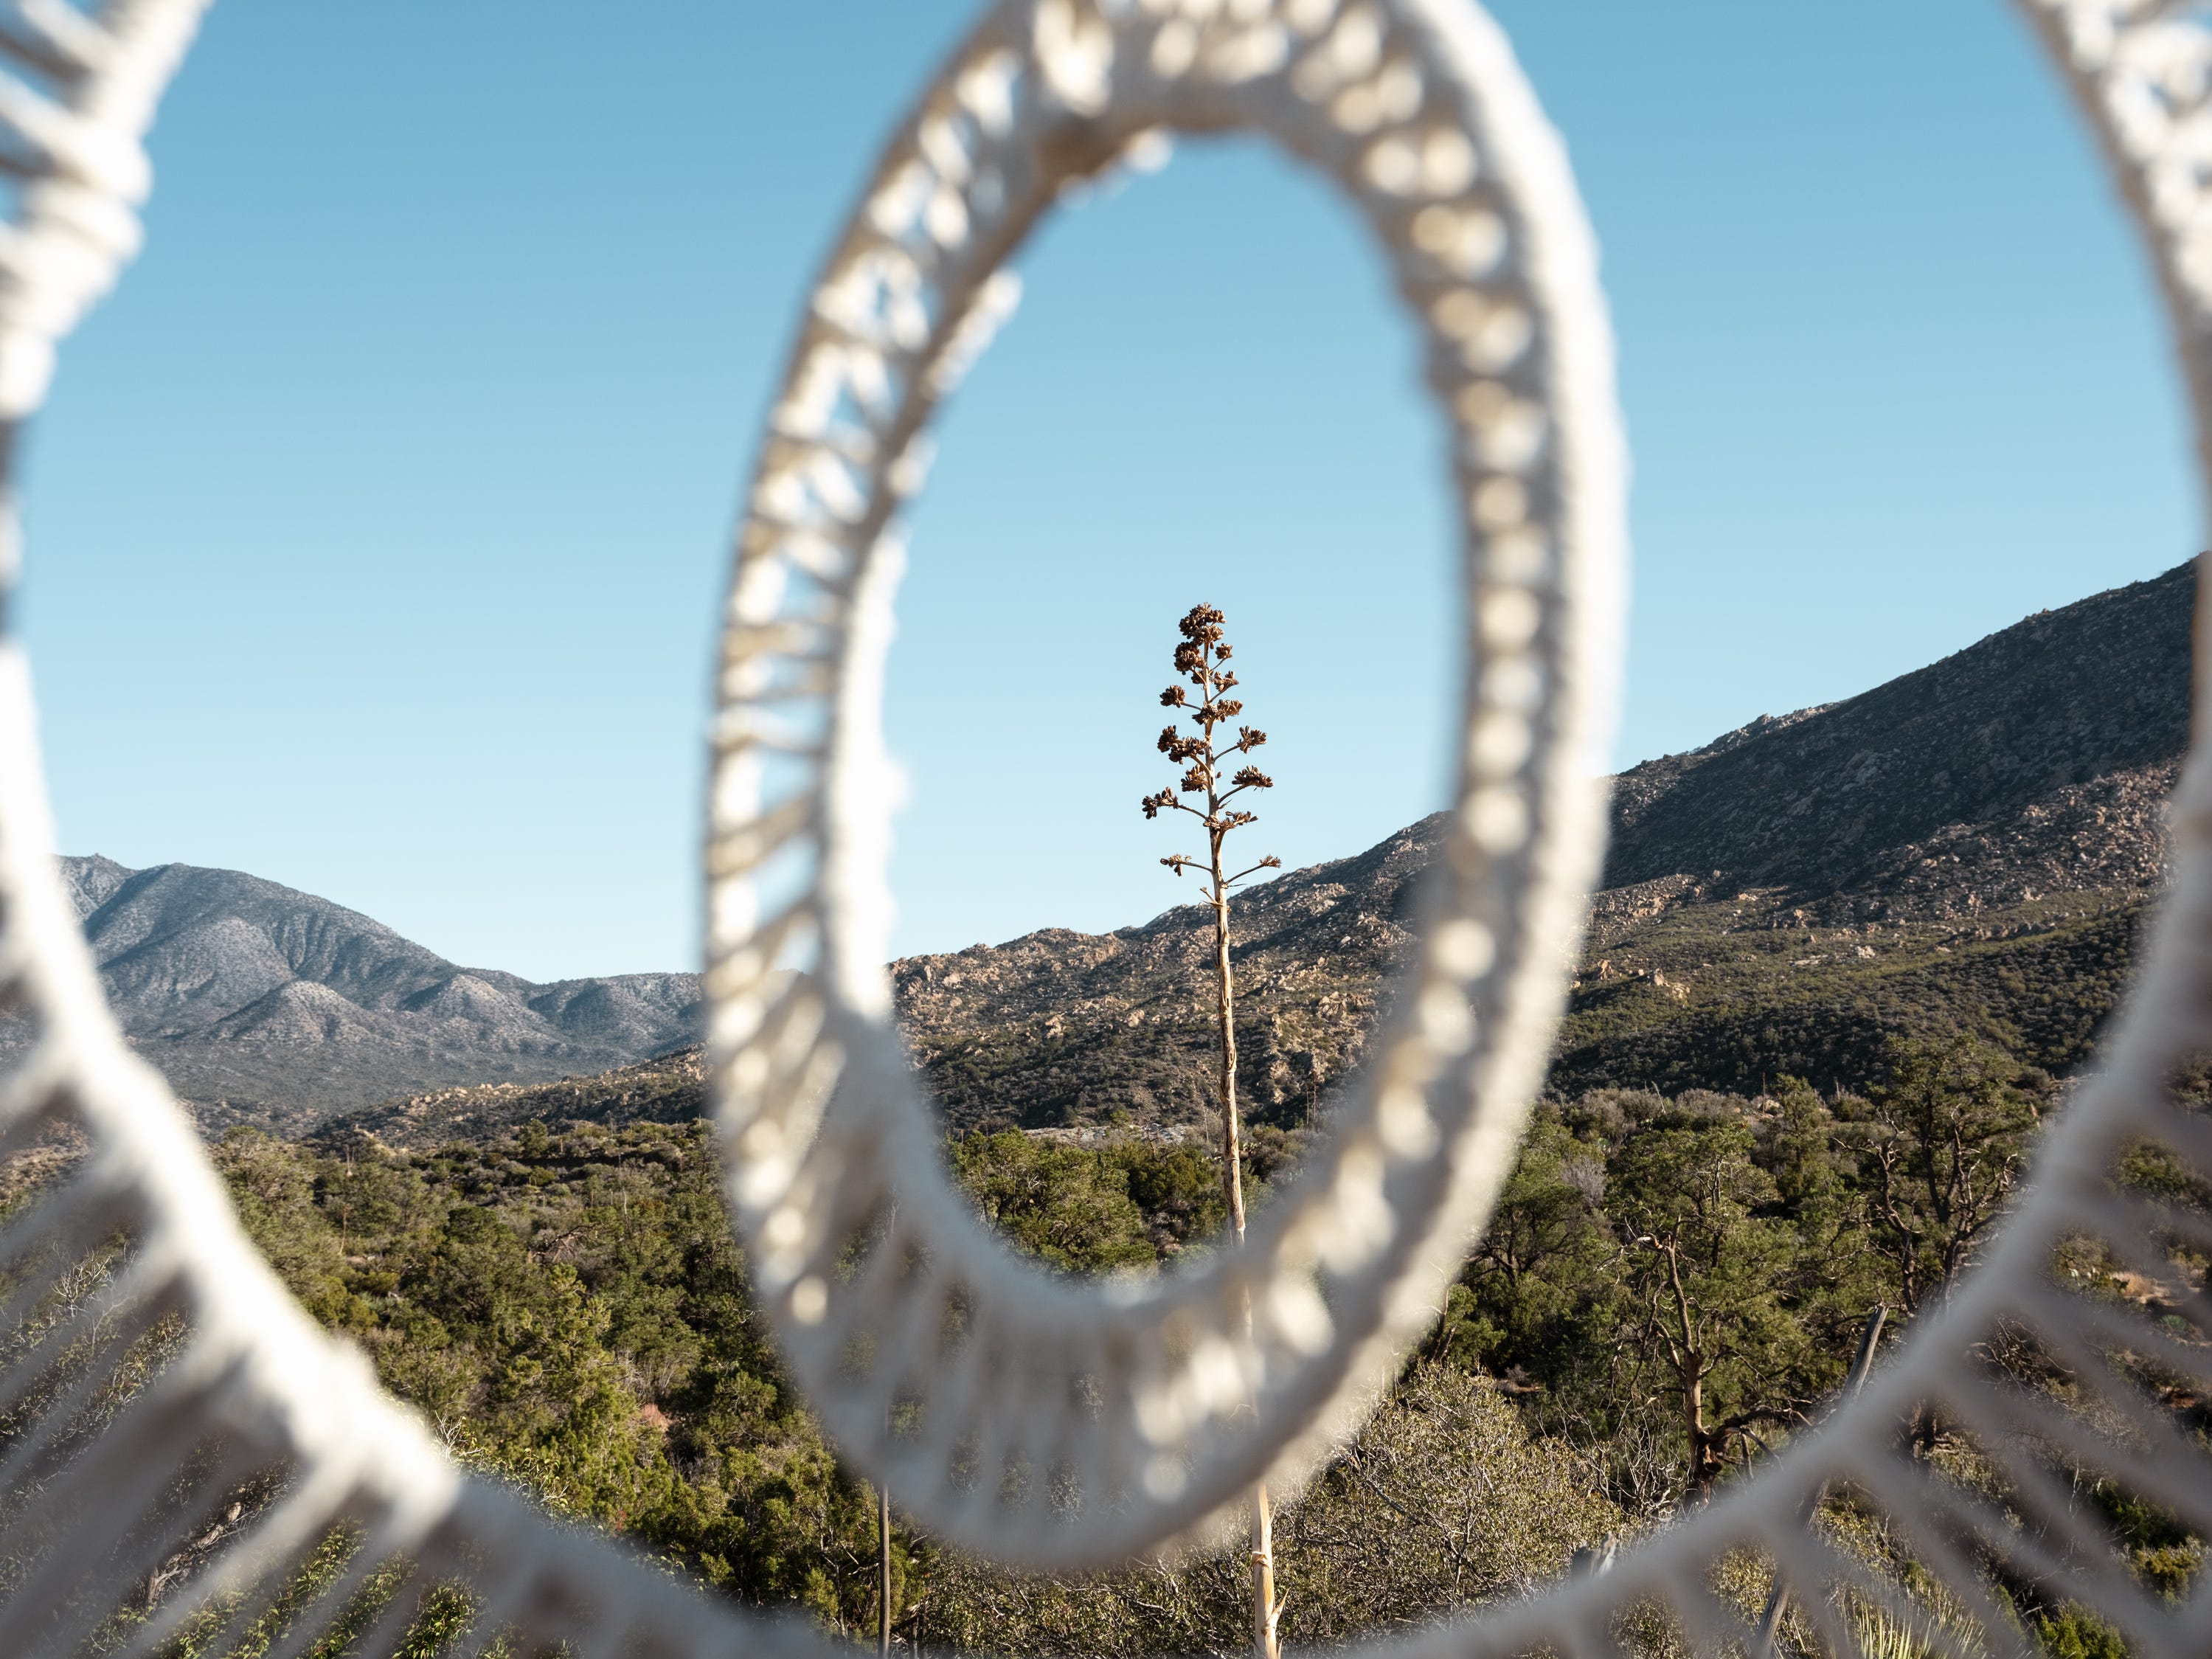 New Desert X experience: Fiber artists are weaving together a 'window to the sky'